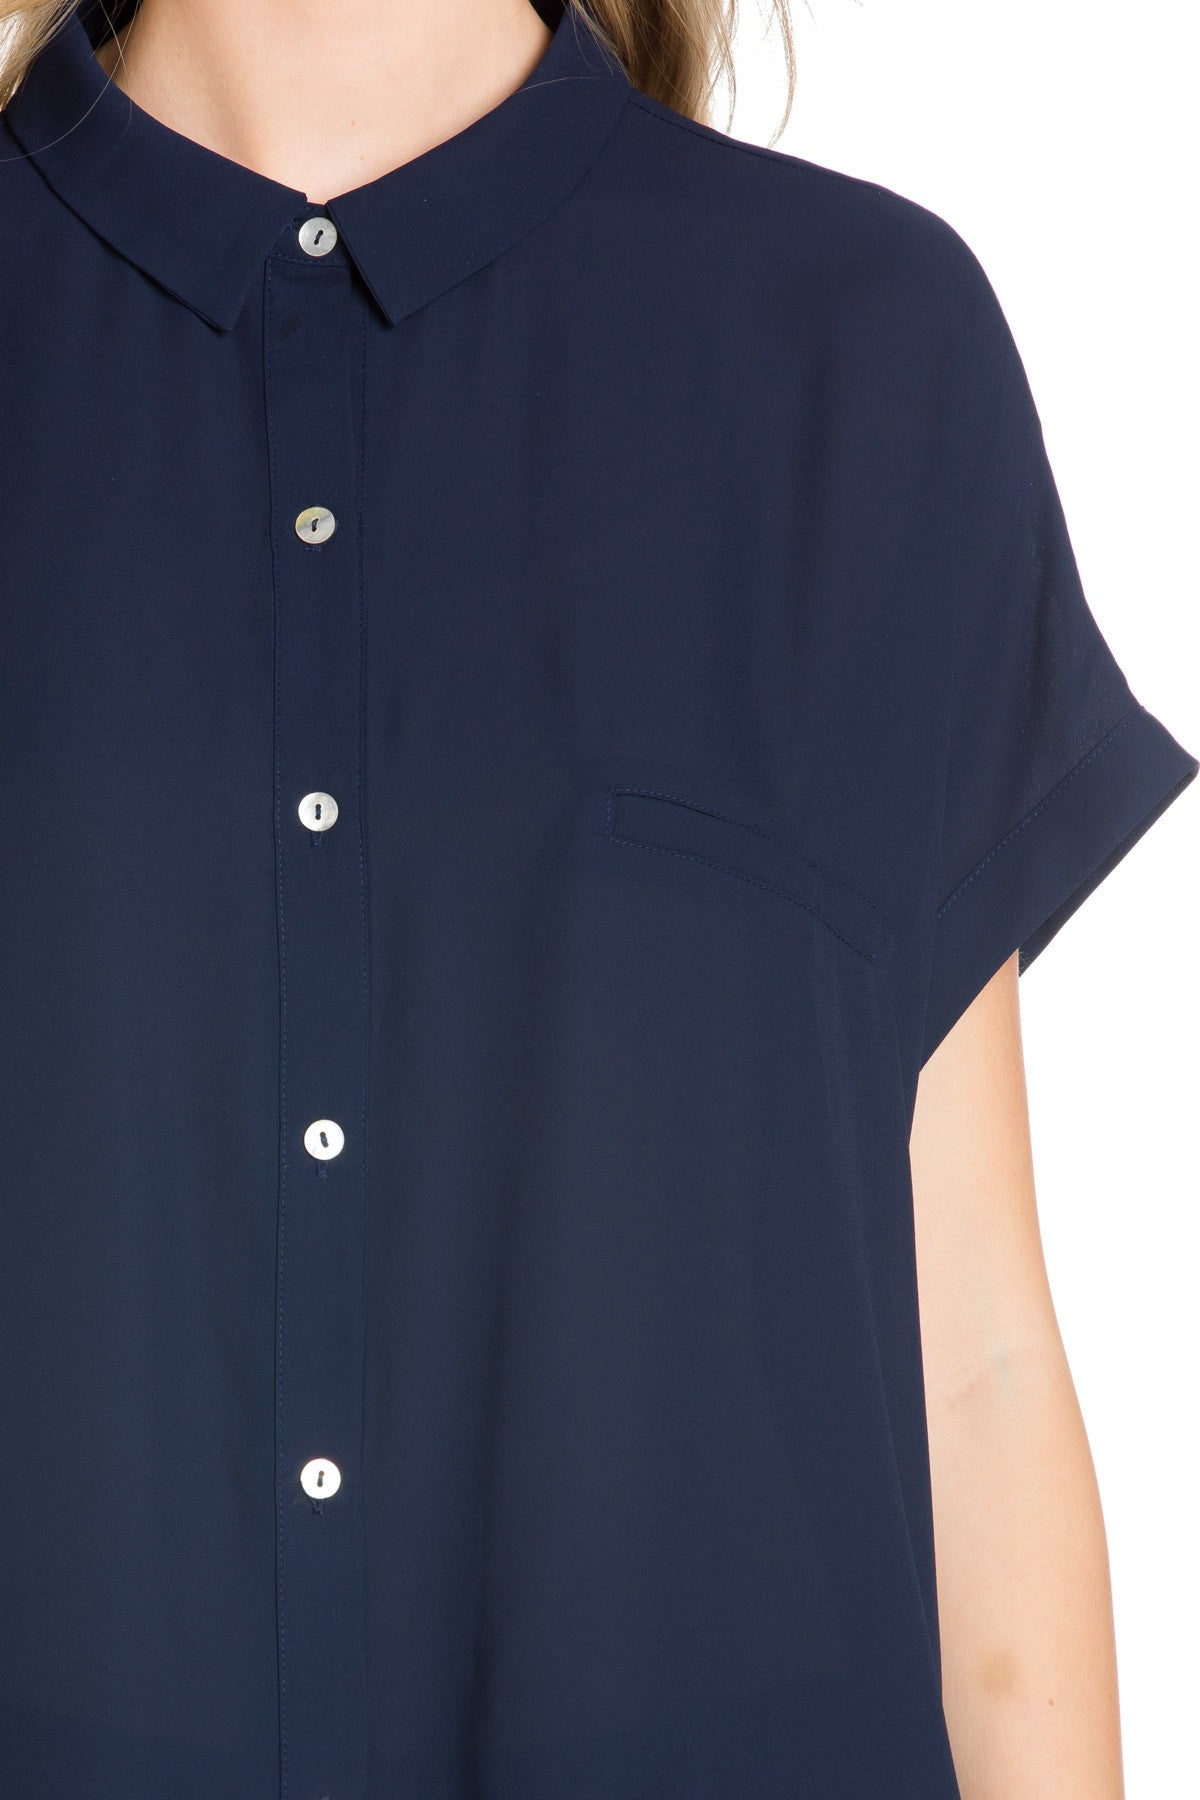 Short Sleeve Longline Button Down Chiffon Top in Midnight Blue - Tops - My Yuccie - 13